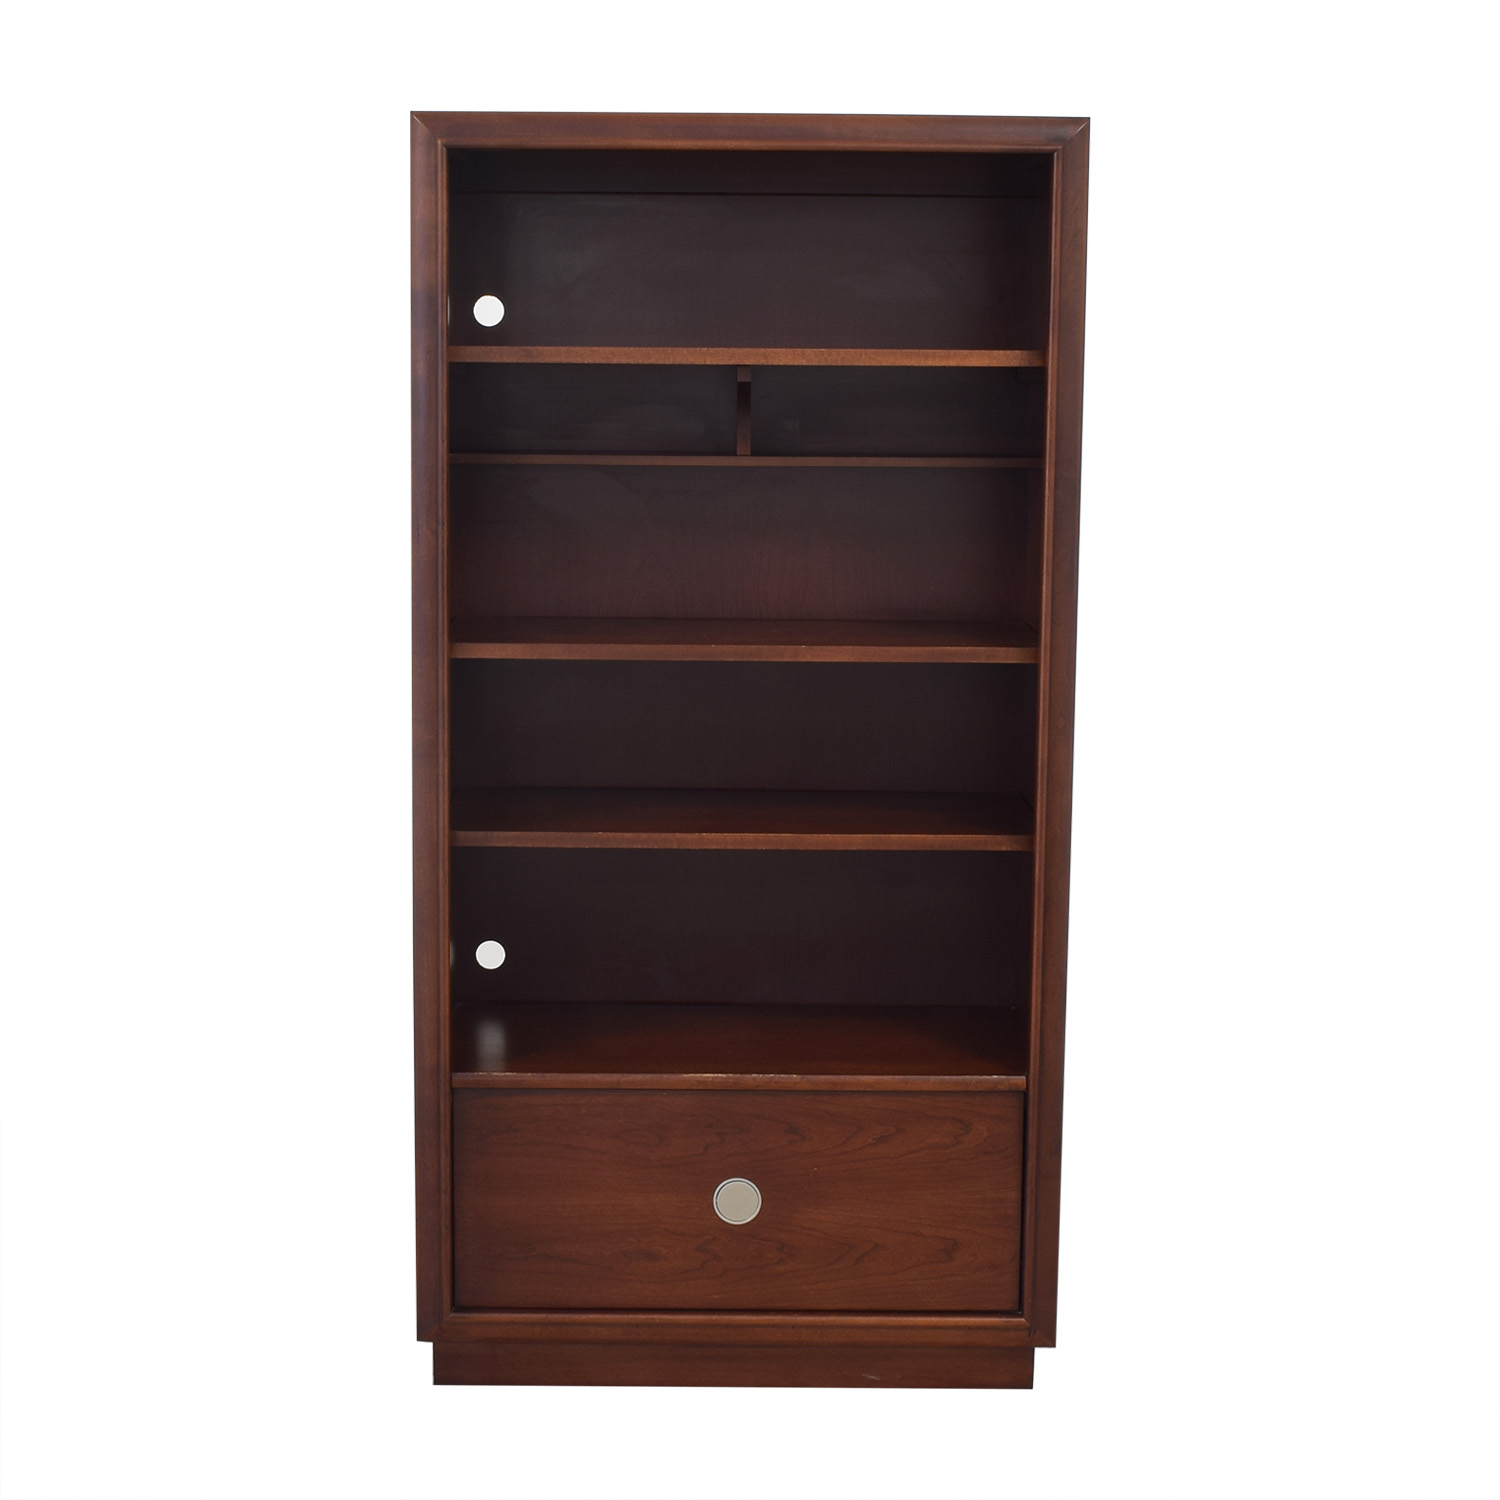 Stanley Furniture Bookshelf with Drawer / Storage